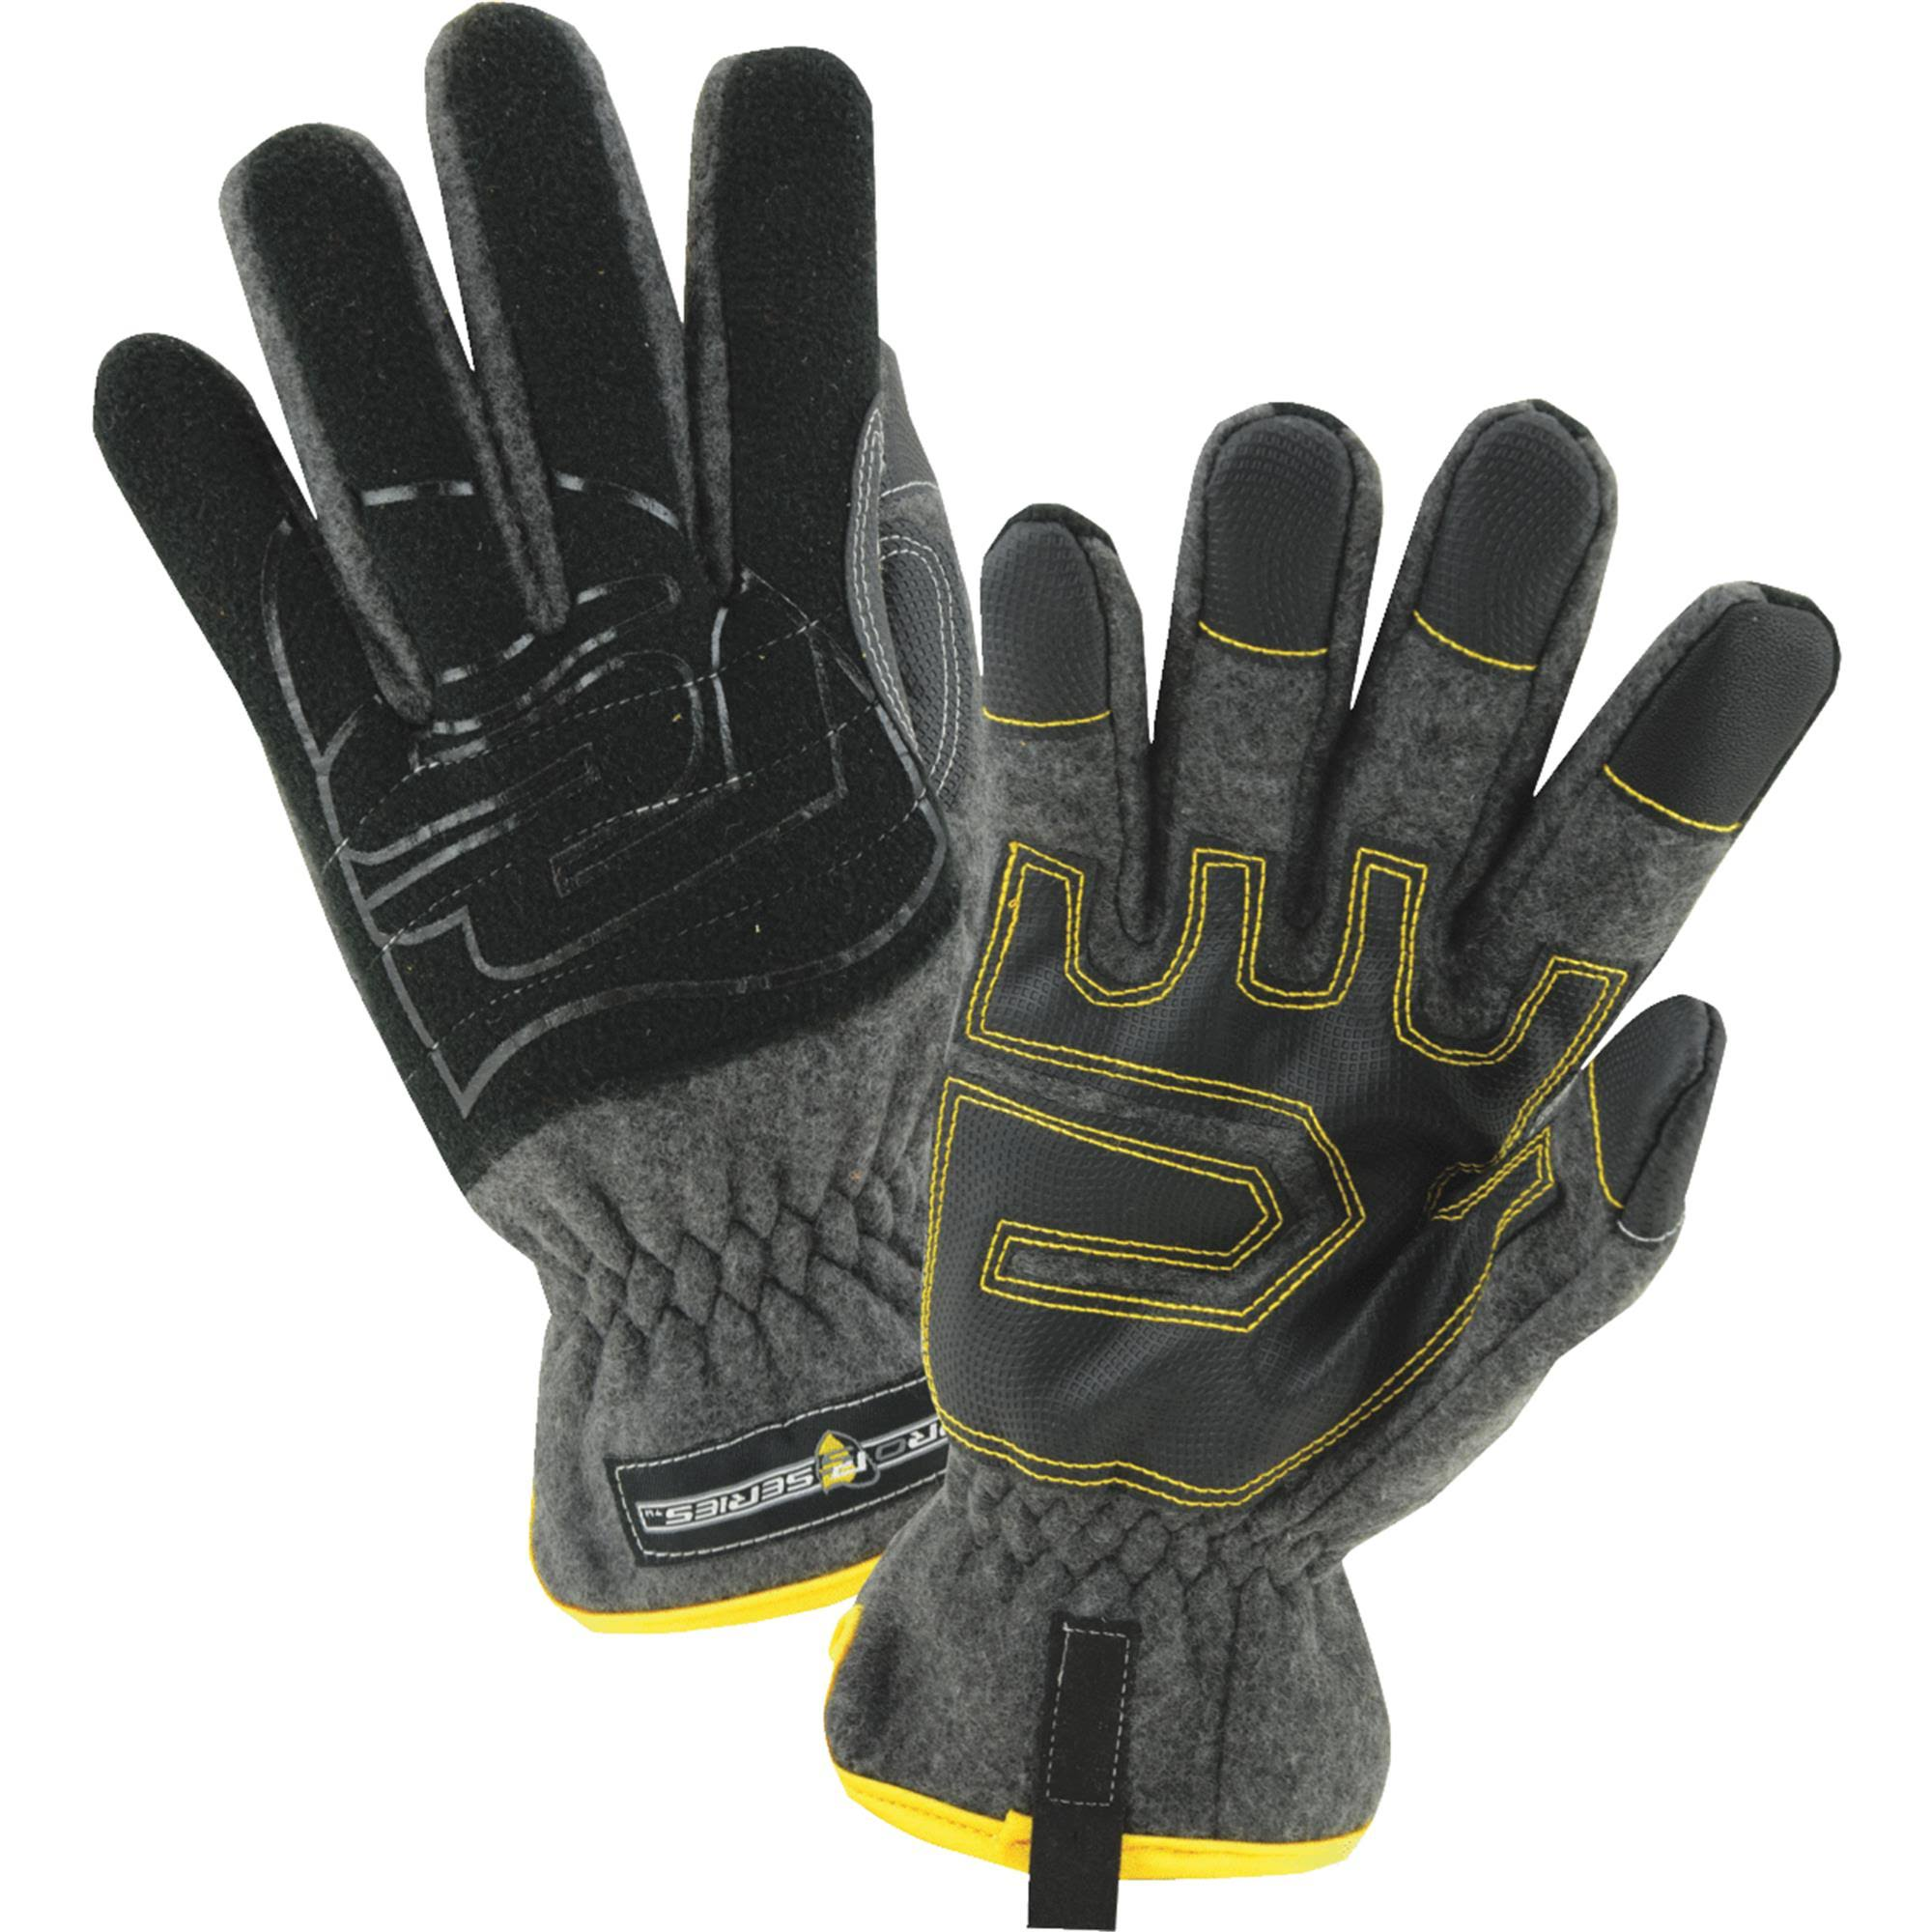 West Chester Pro Series Winter Work Gloves - Large